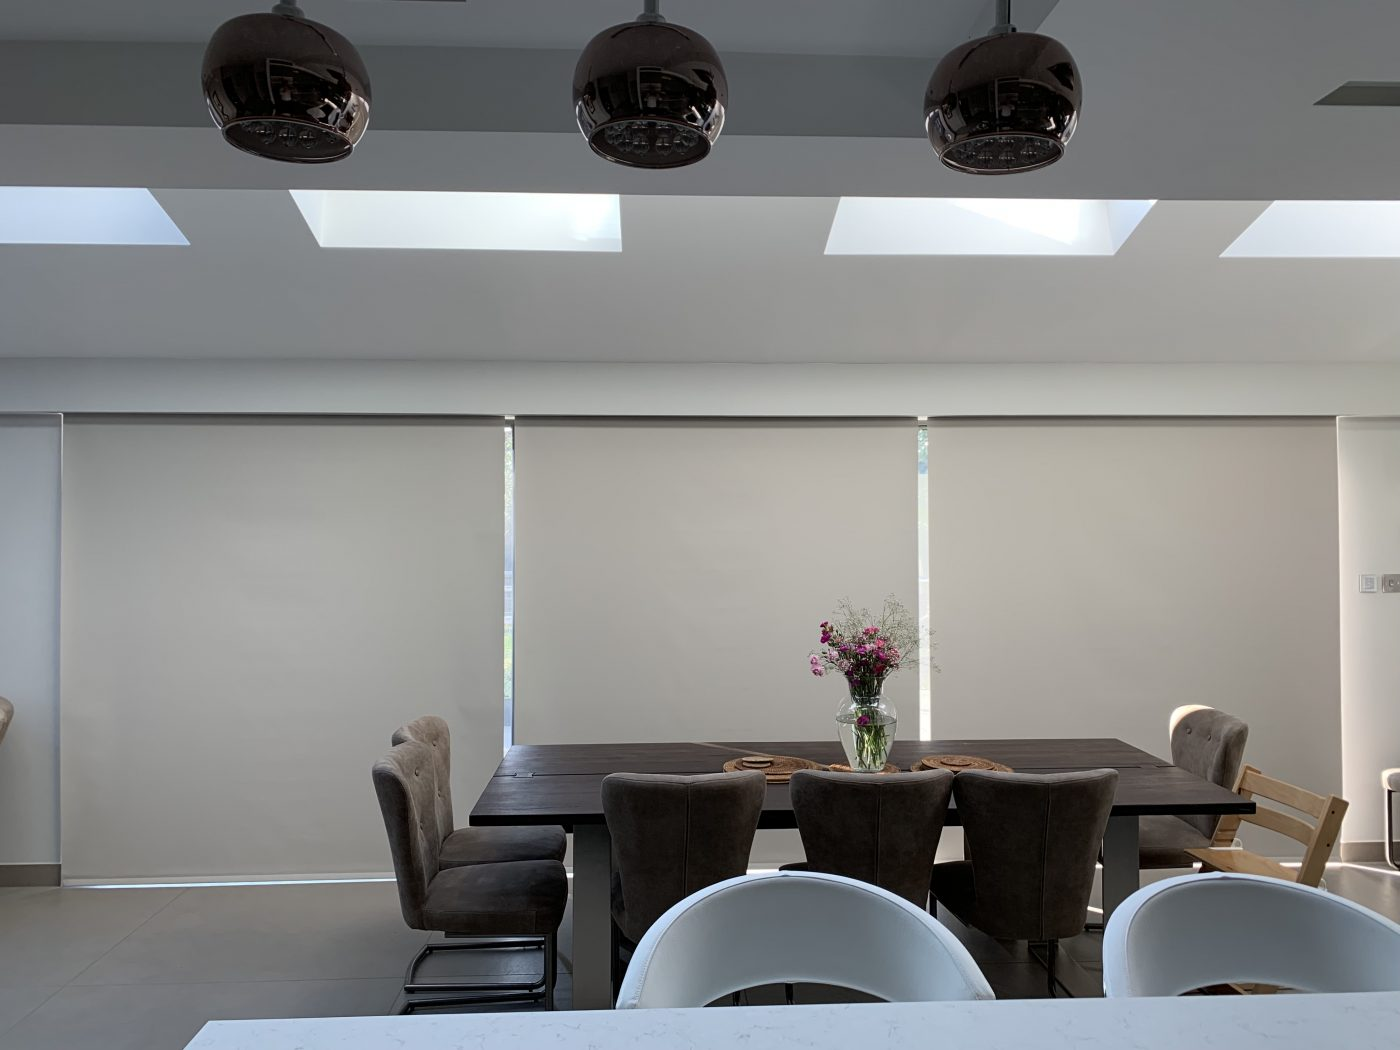 Electric Blinds For Large Patio Doors - The Electric Blind Company